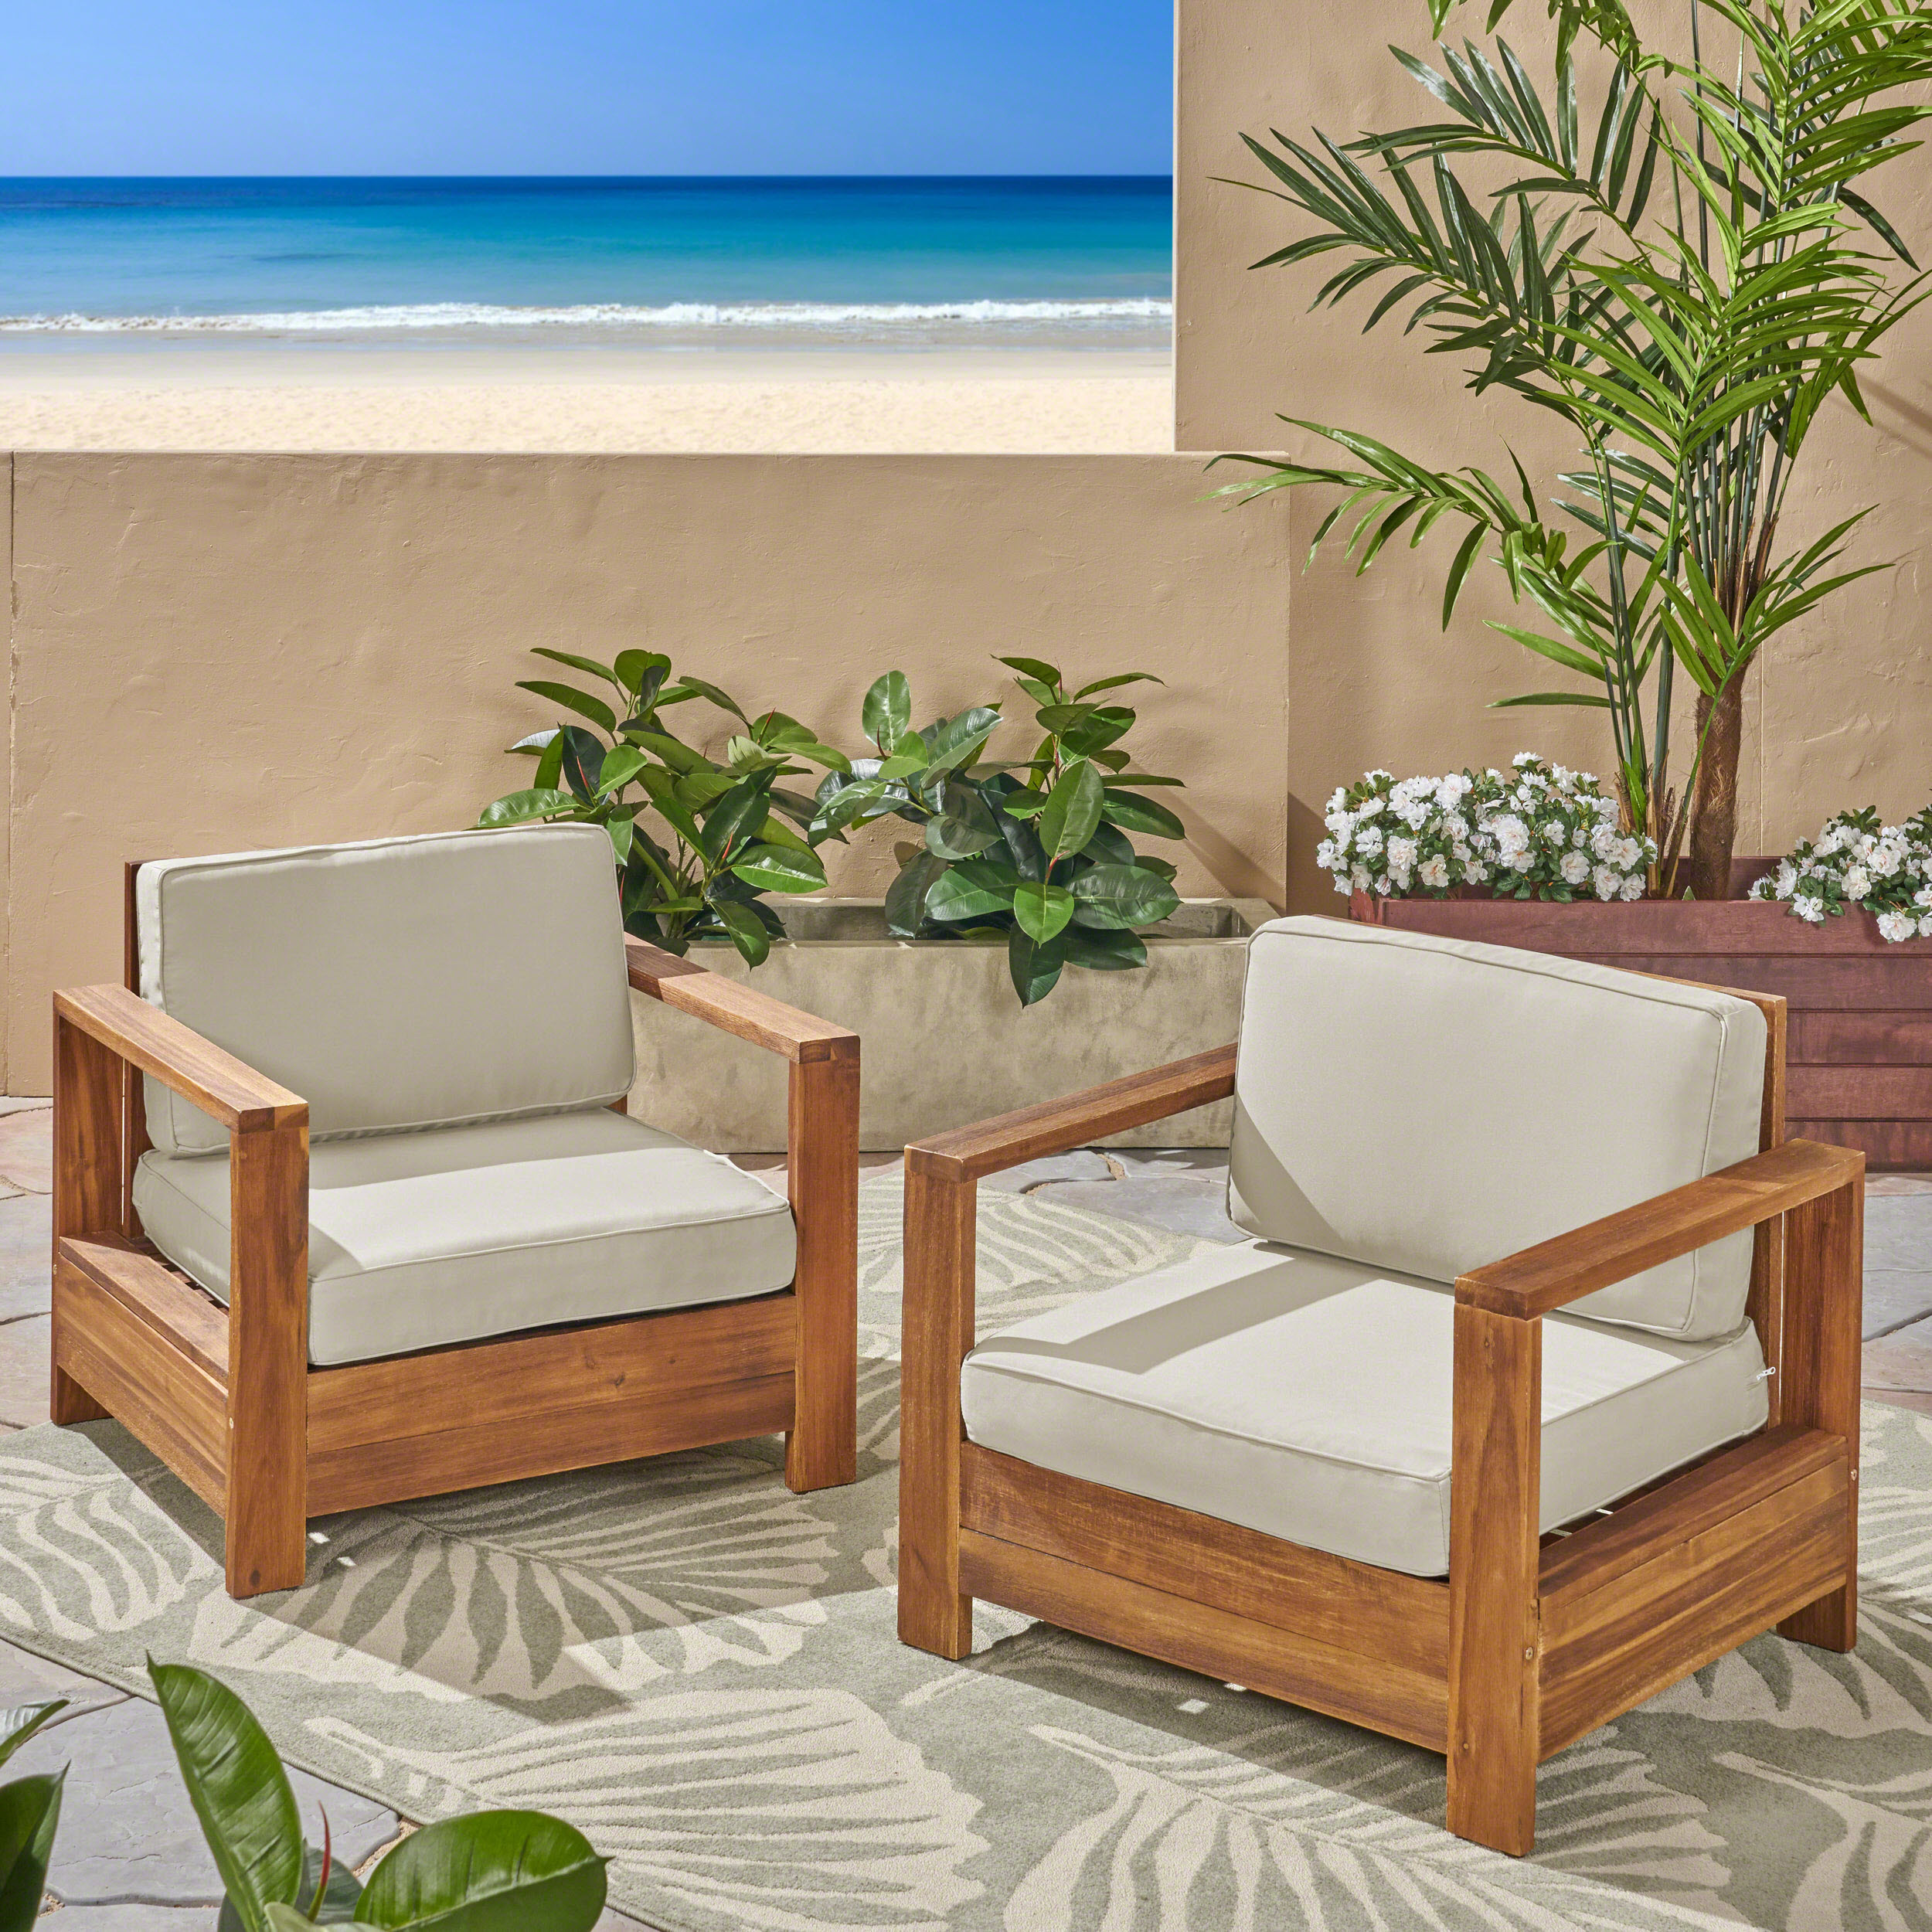 Avalynn Outdoor Acacia Wood Club Chairs with Cushions, Set of 2, Brushed Brown Patina, Light Beige